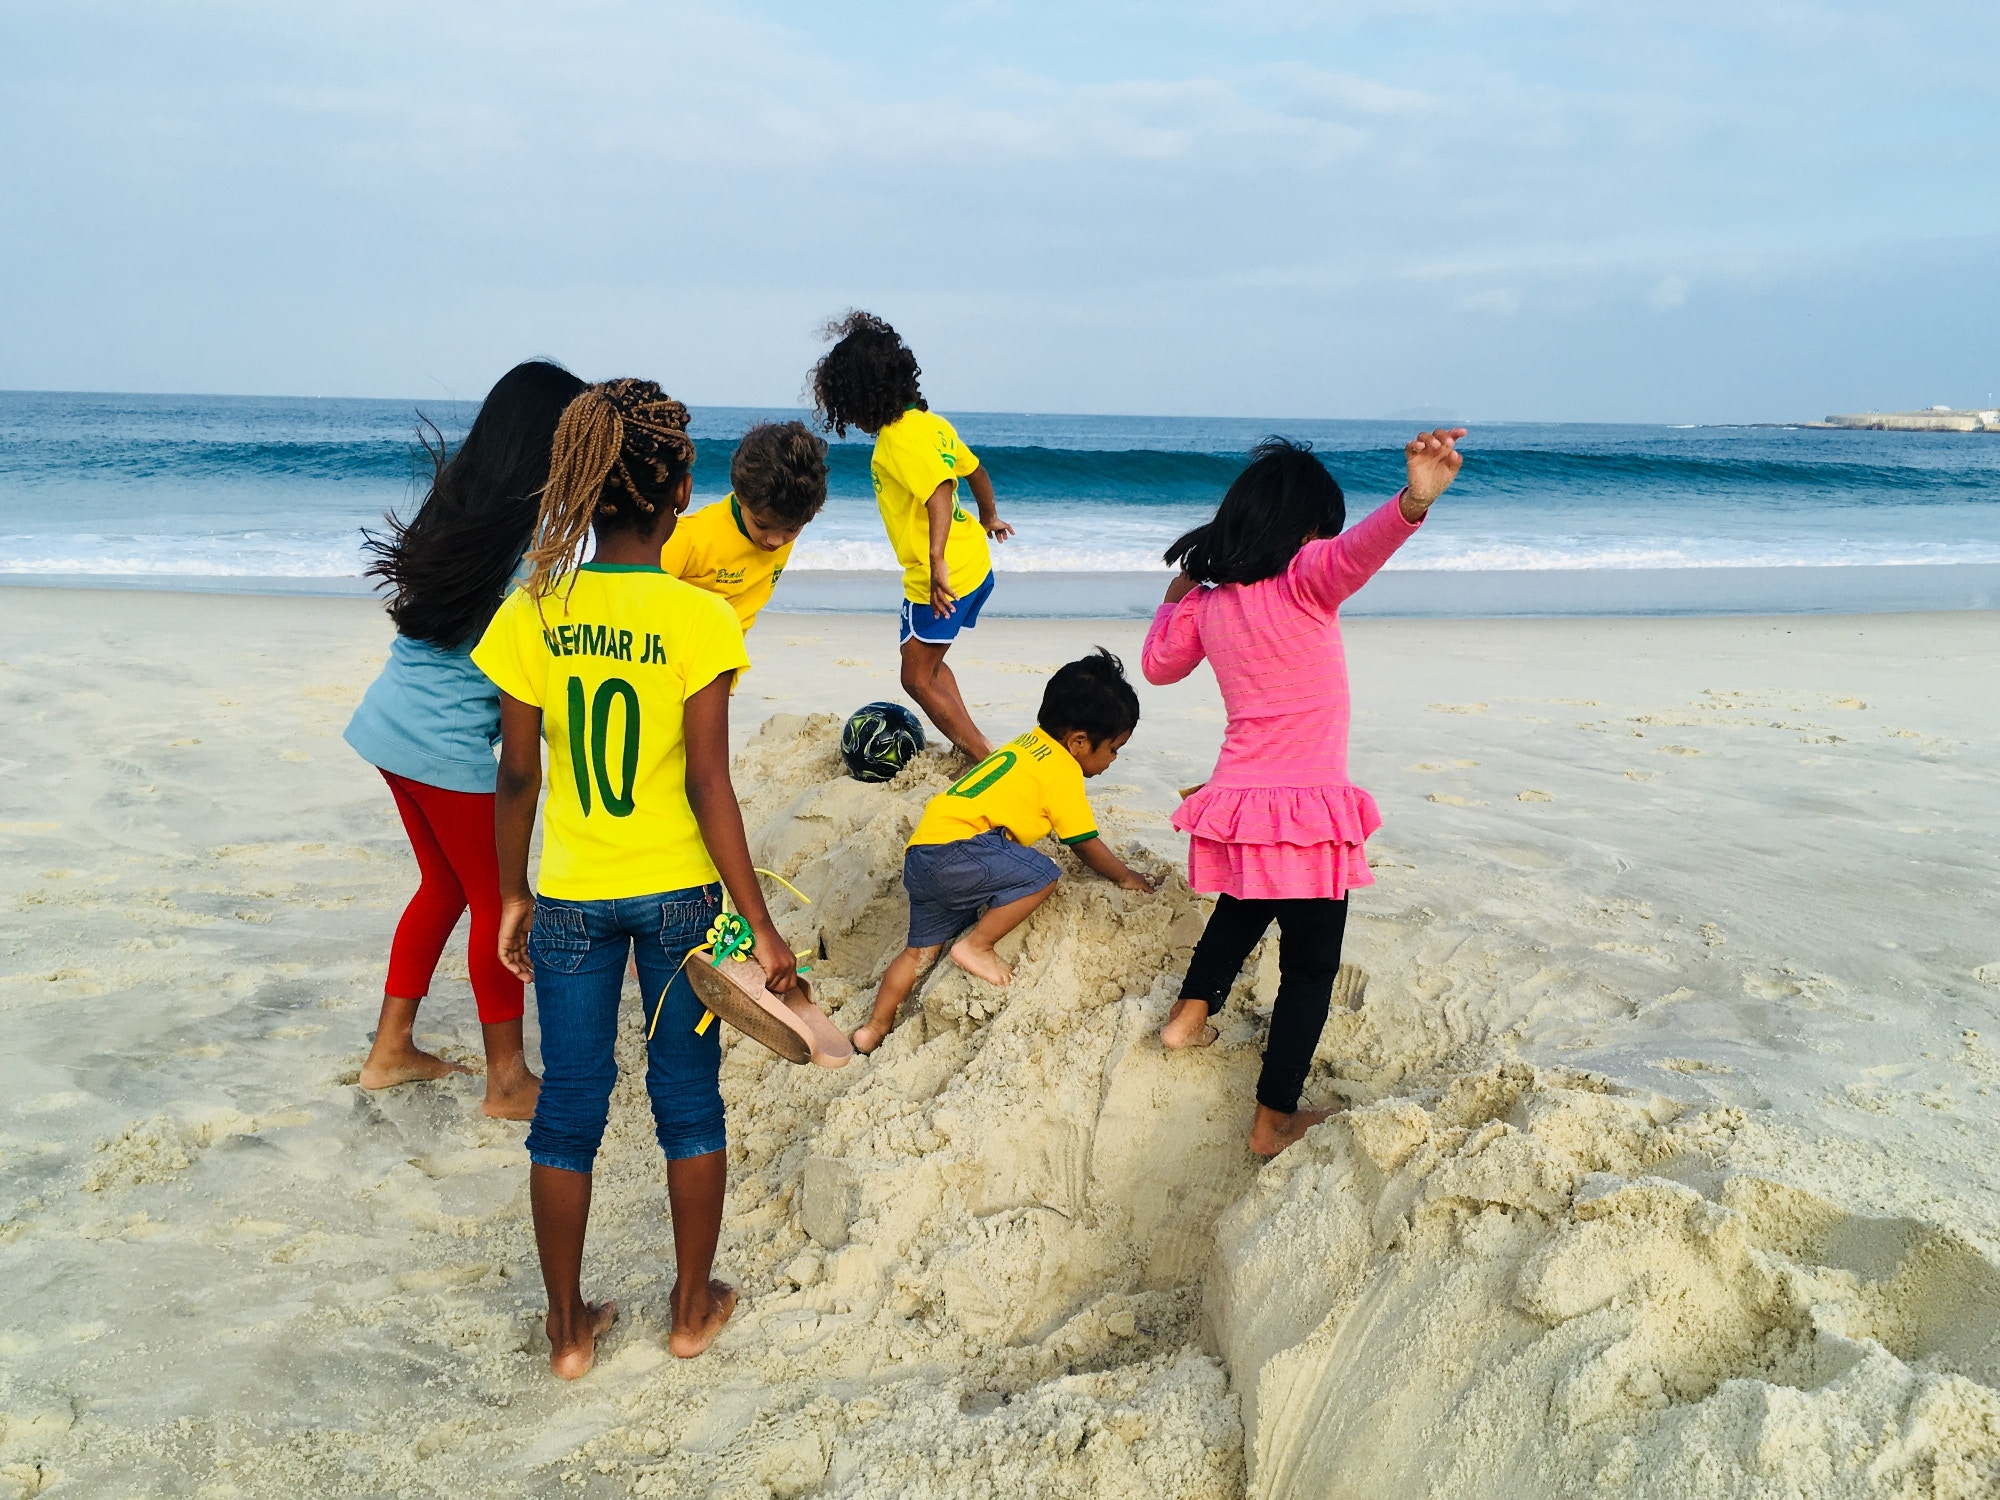 Samai's son playing with children on Copacabana beach, Rio de Janeiro